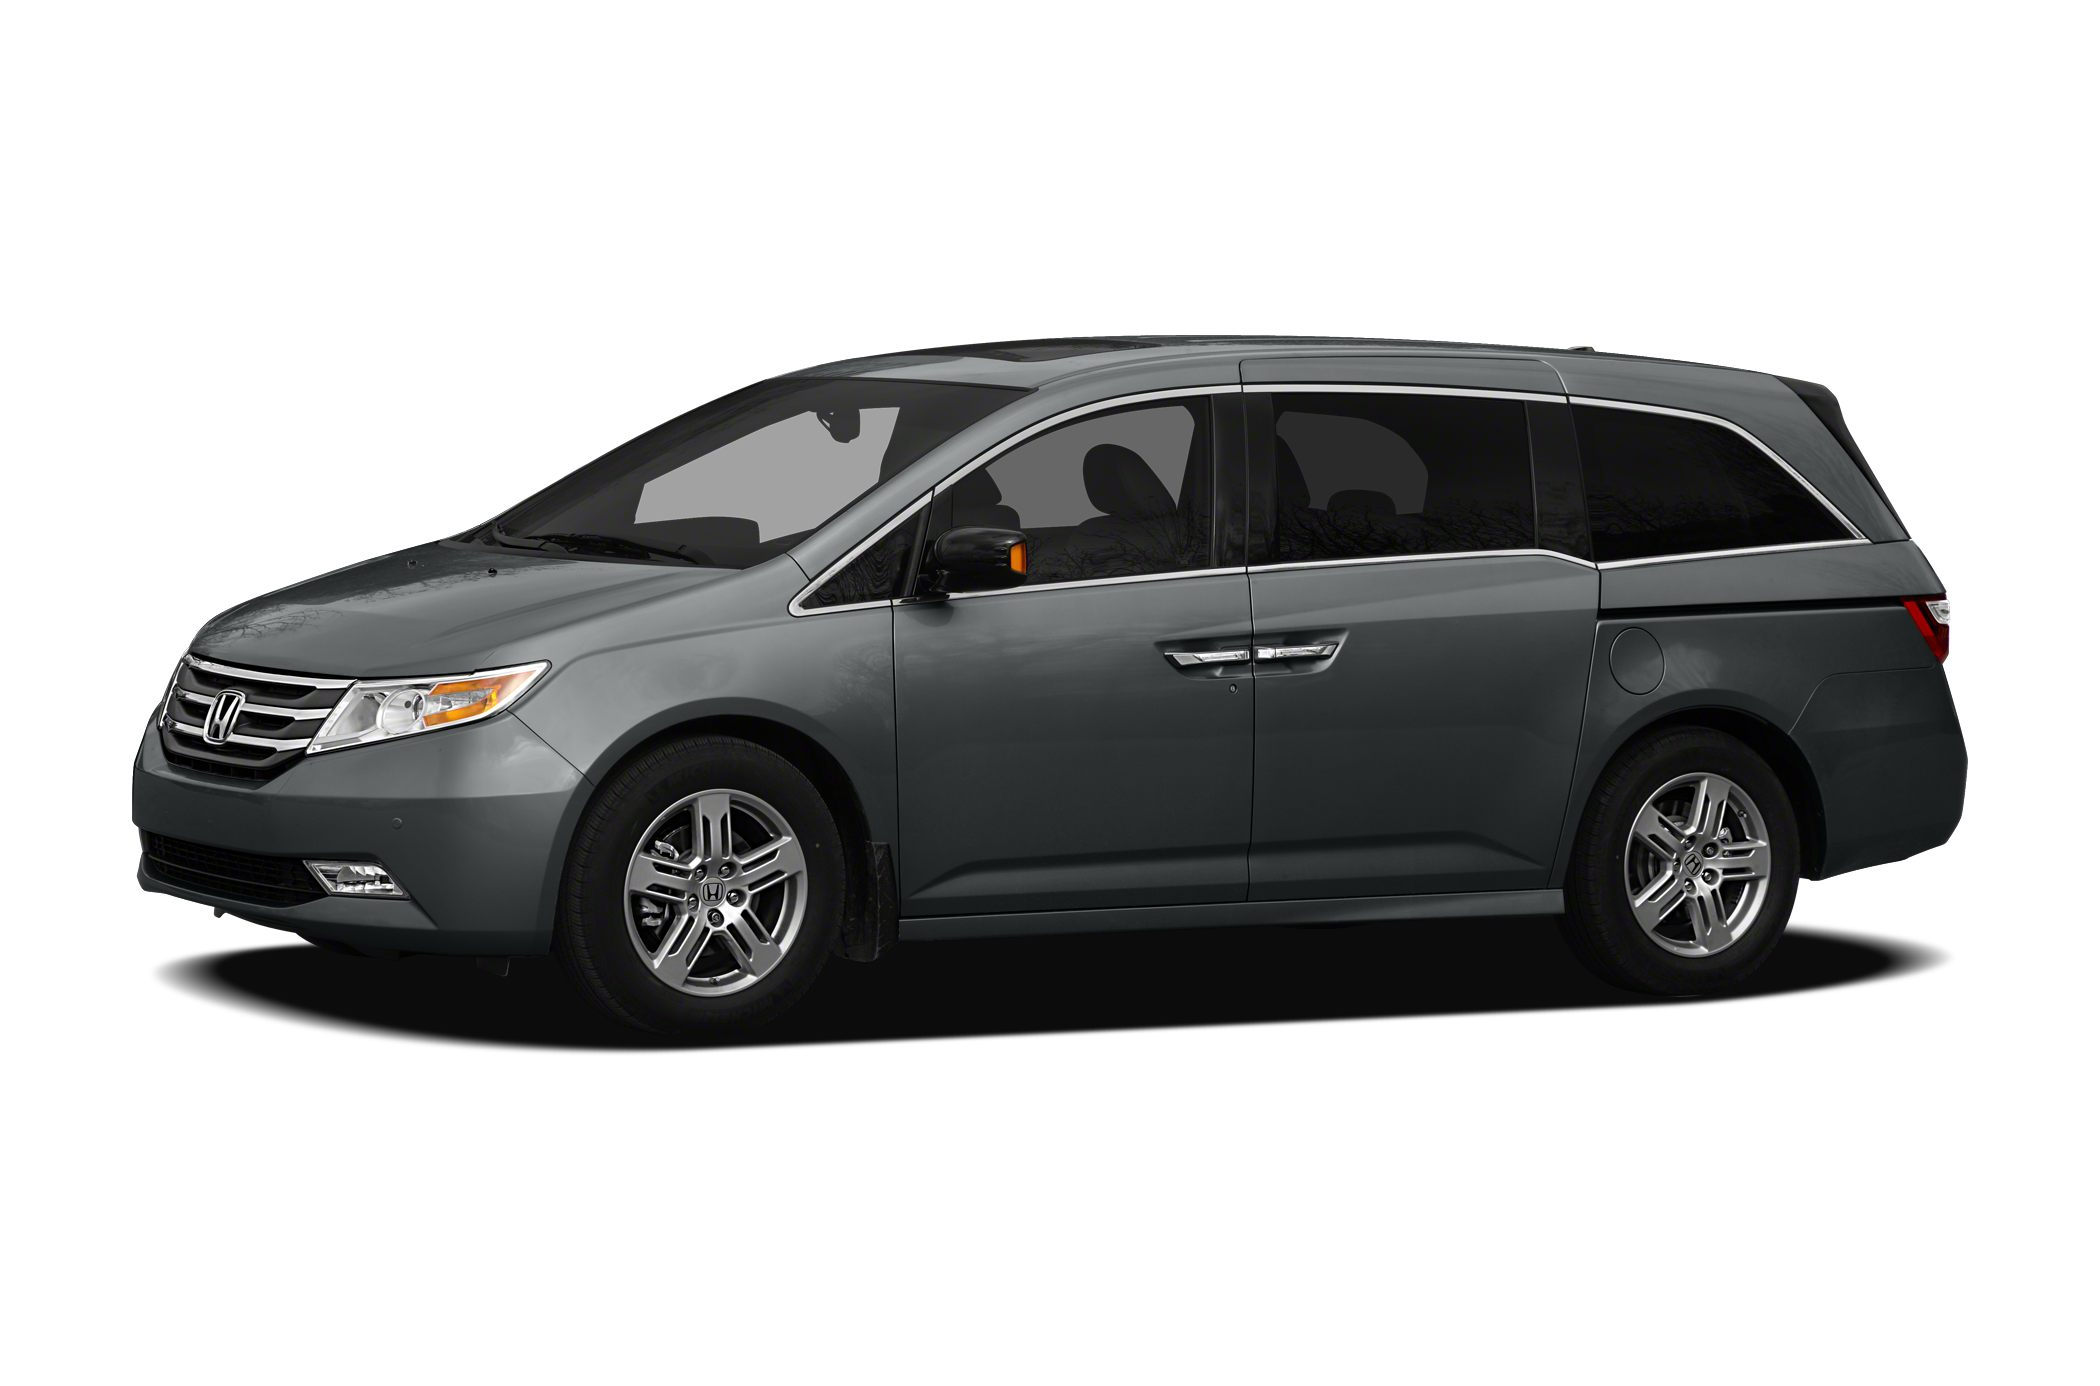 odyssey reviews speed honda news cars and top price